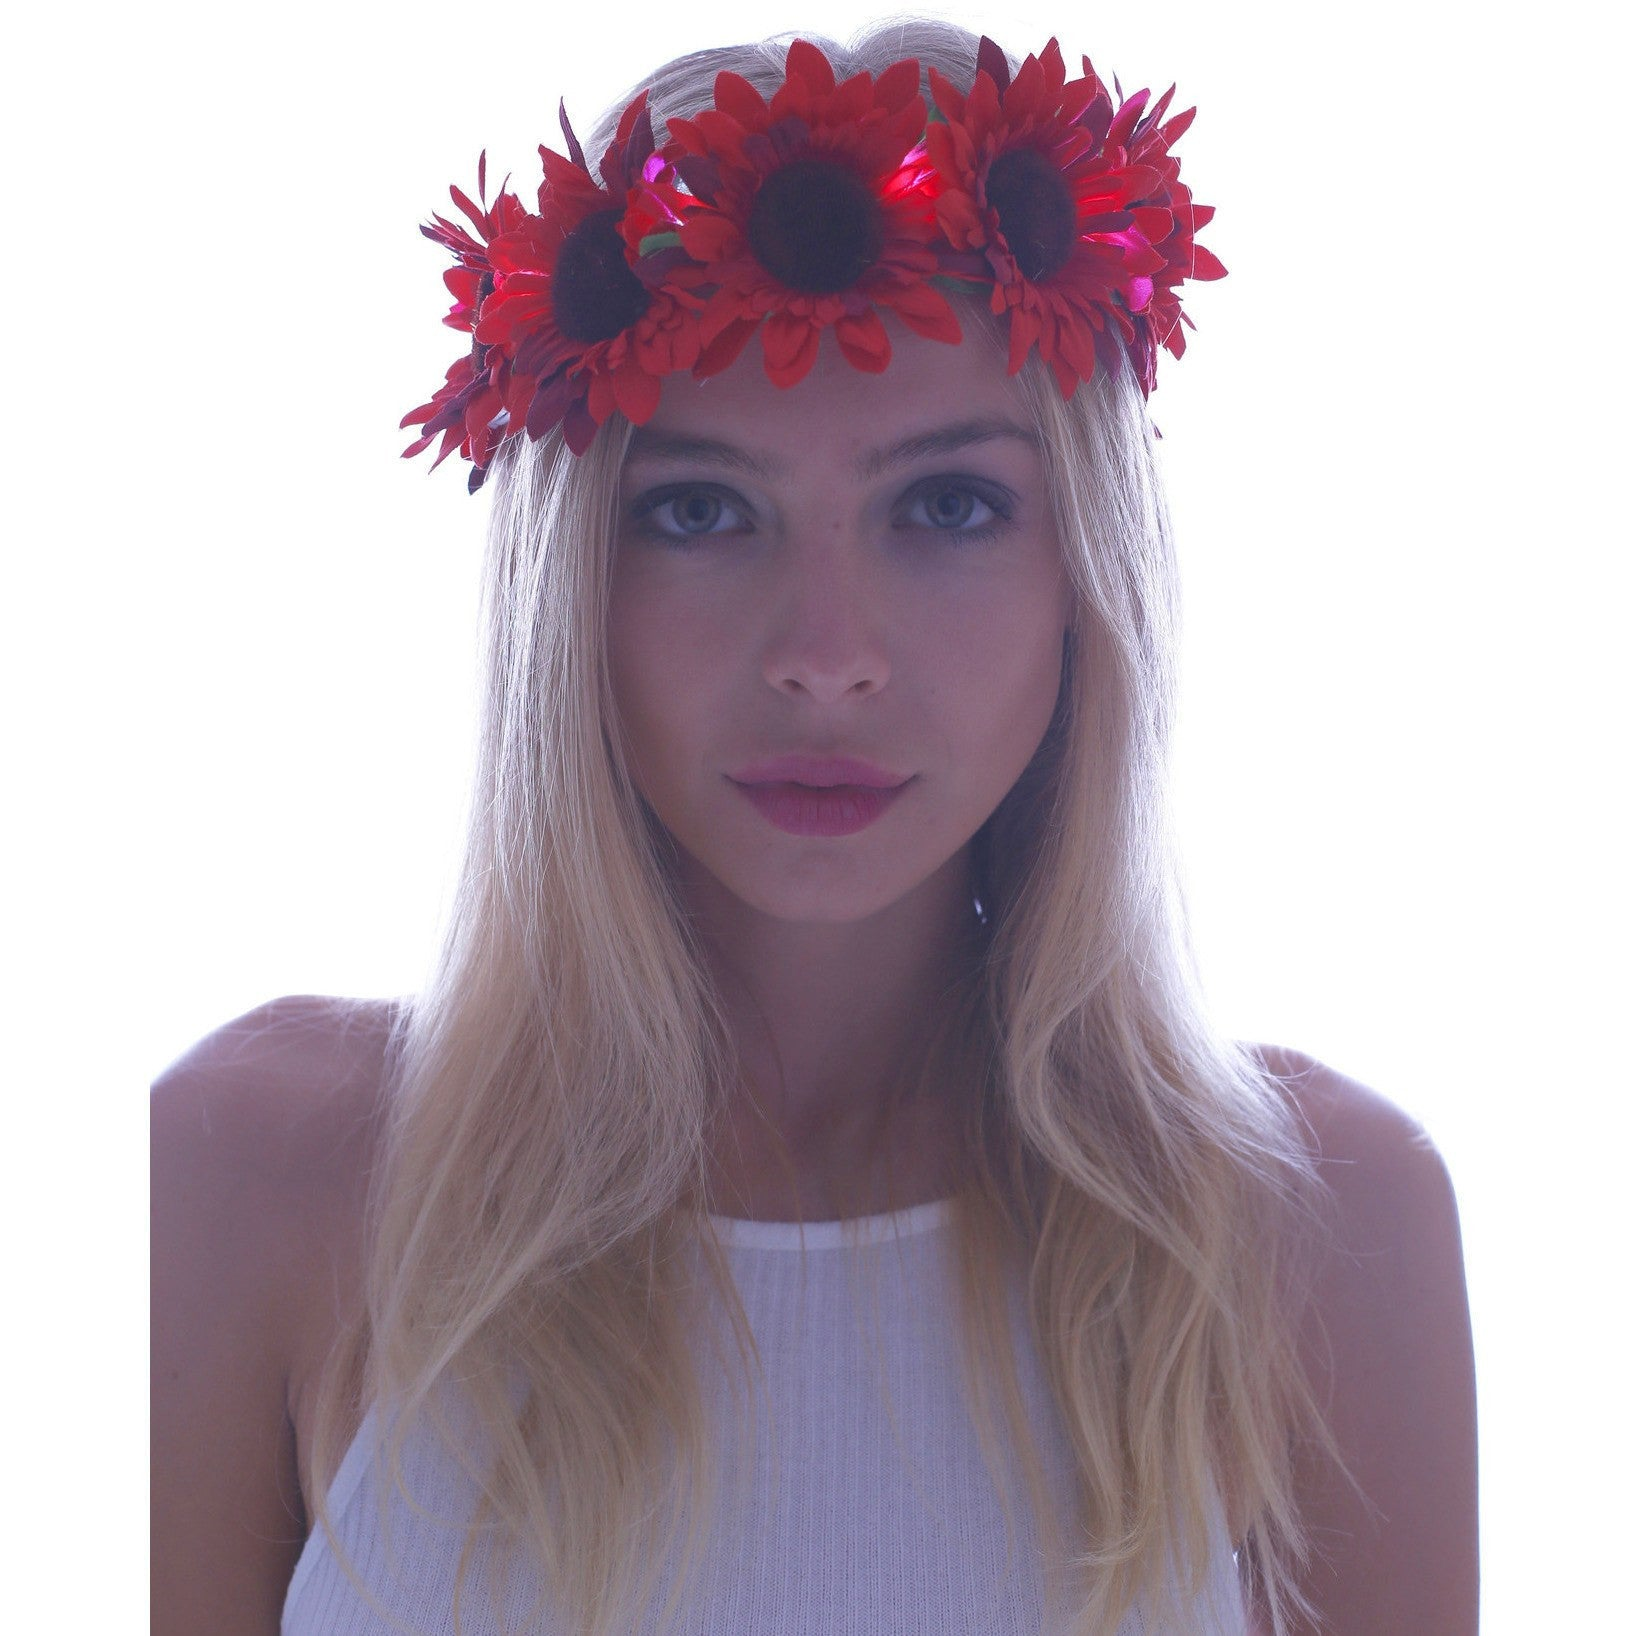 Red Daisy LED Light Up Flower Crown - Rave Rebel